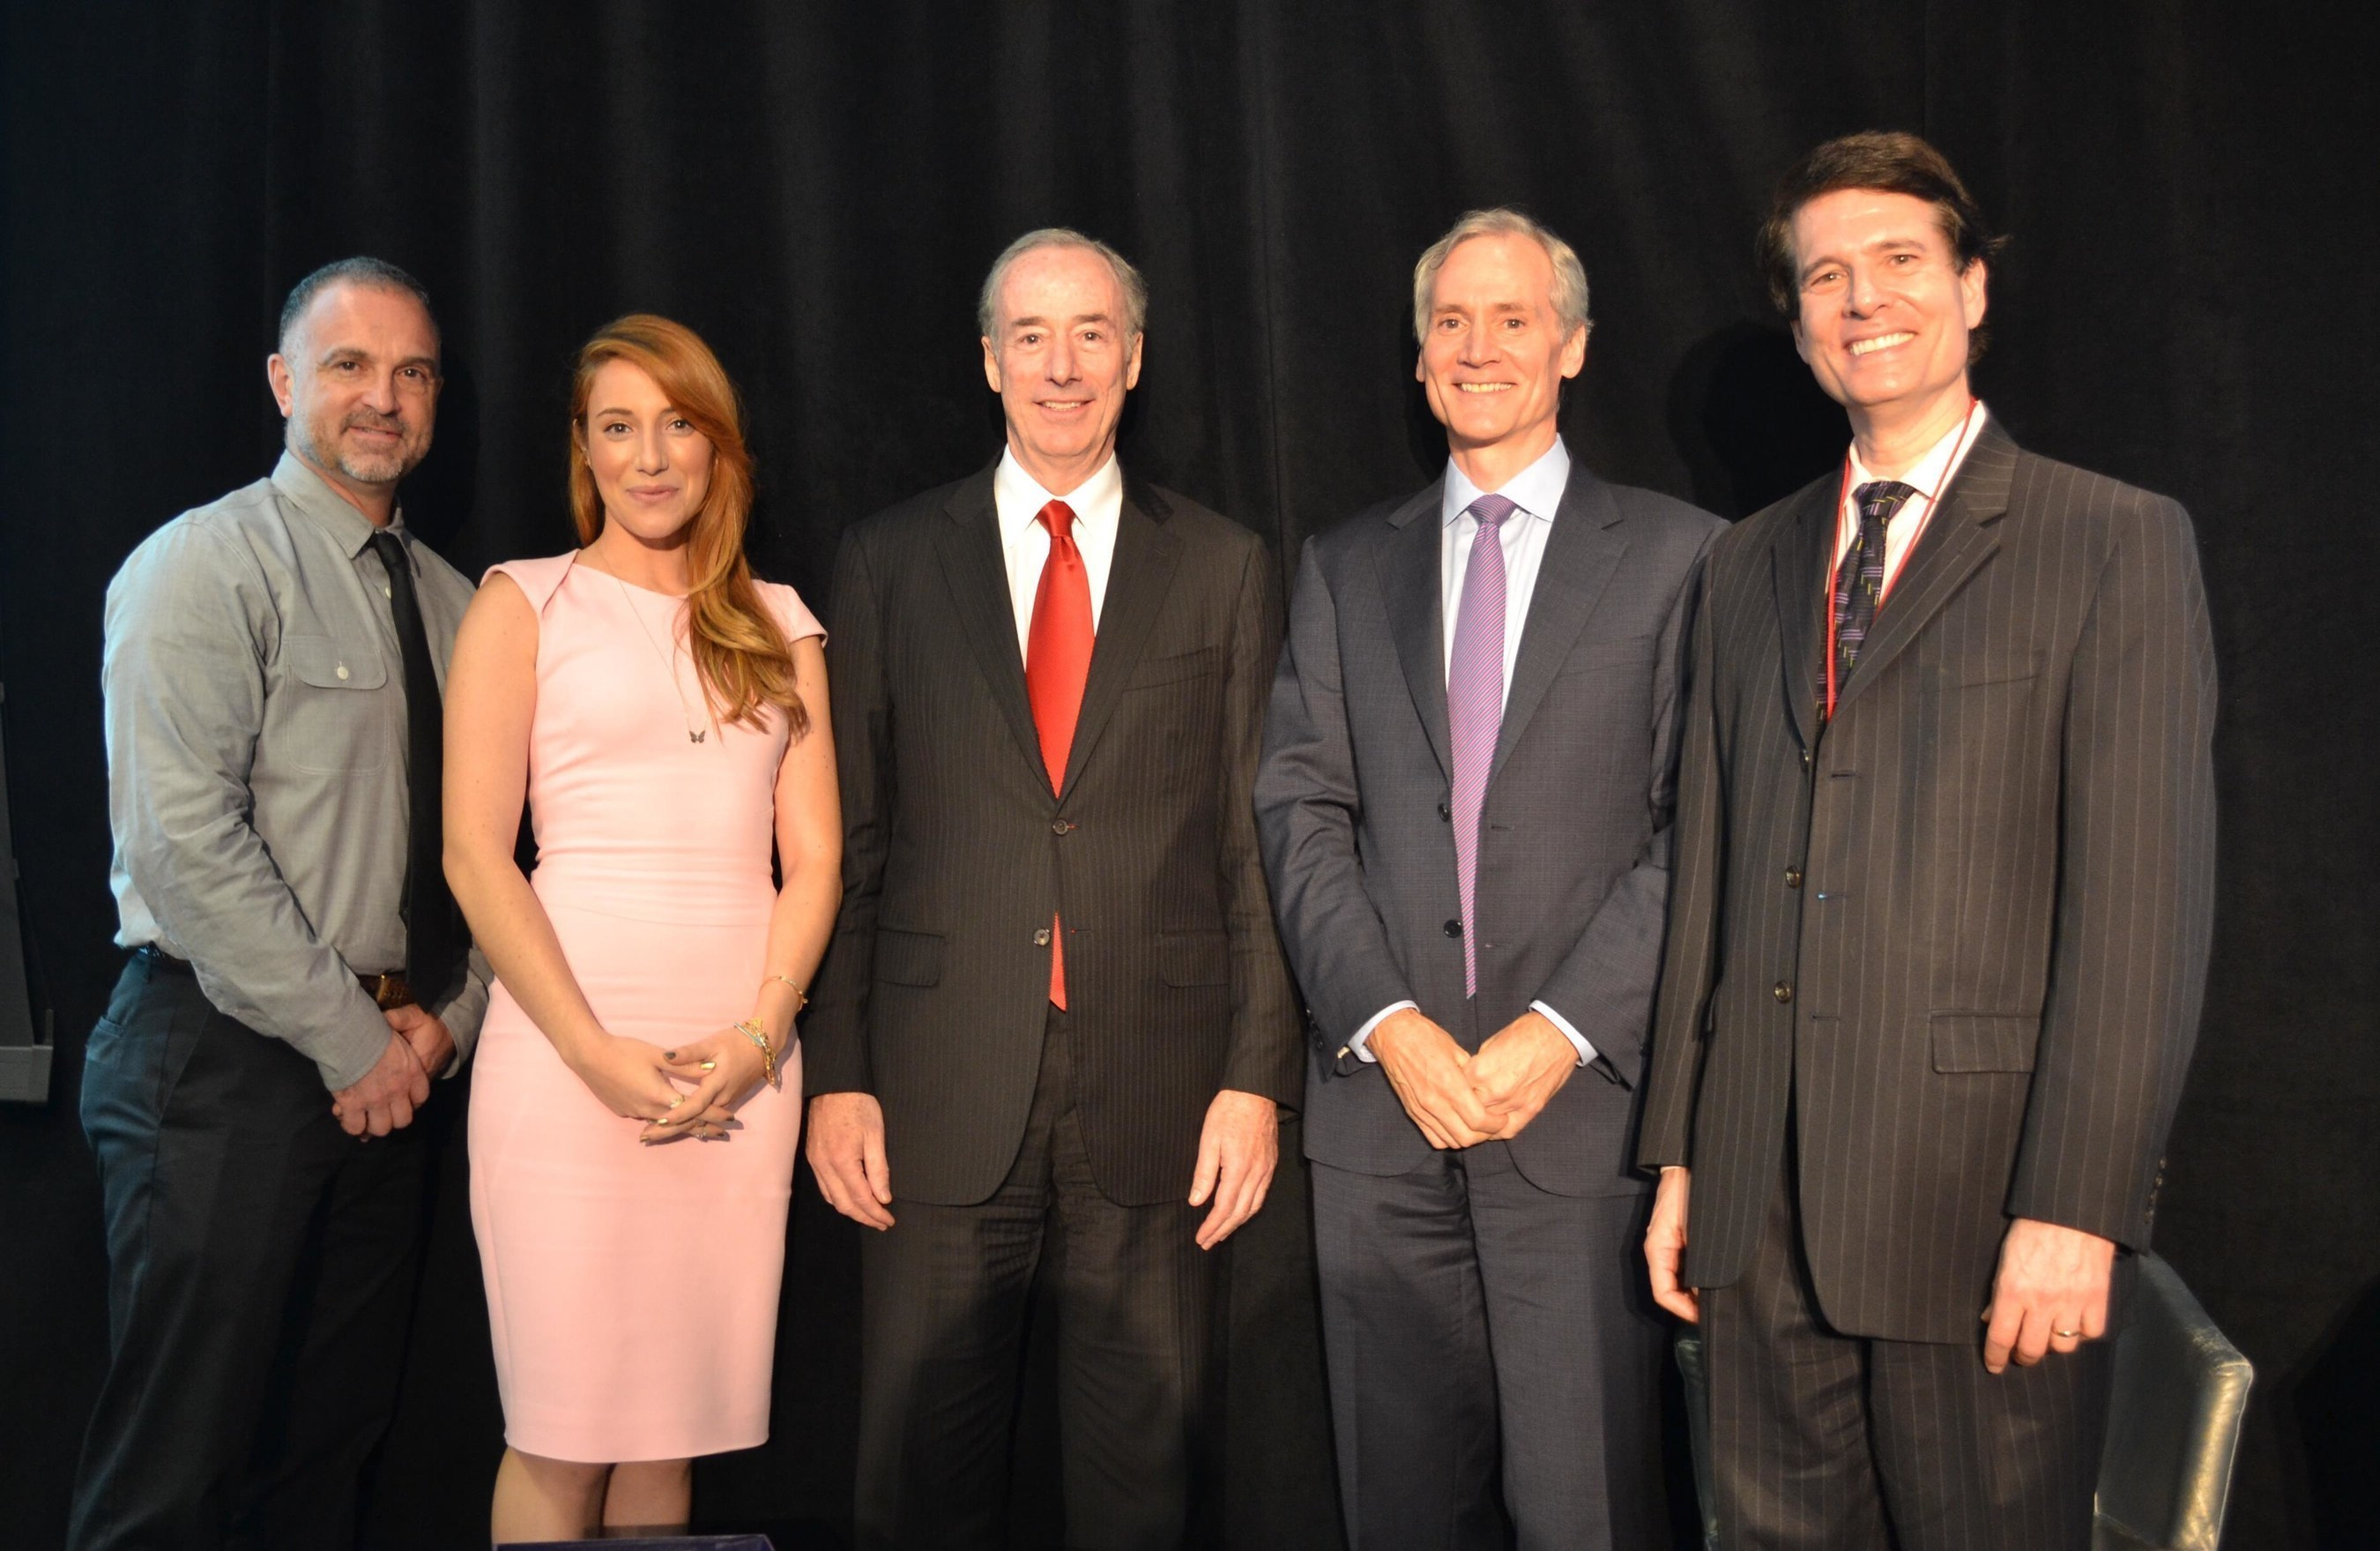 Pictured from left to right: George Yancopoulos, MD, PhD; Camila Siegel, Joel S. Marcus; Marc Tessier-Lavigne, PhD; Ron Cohen, MD